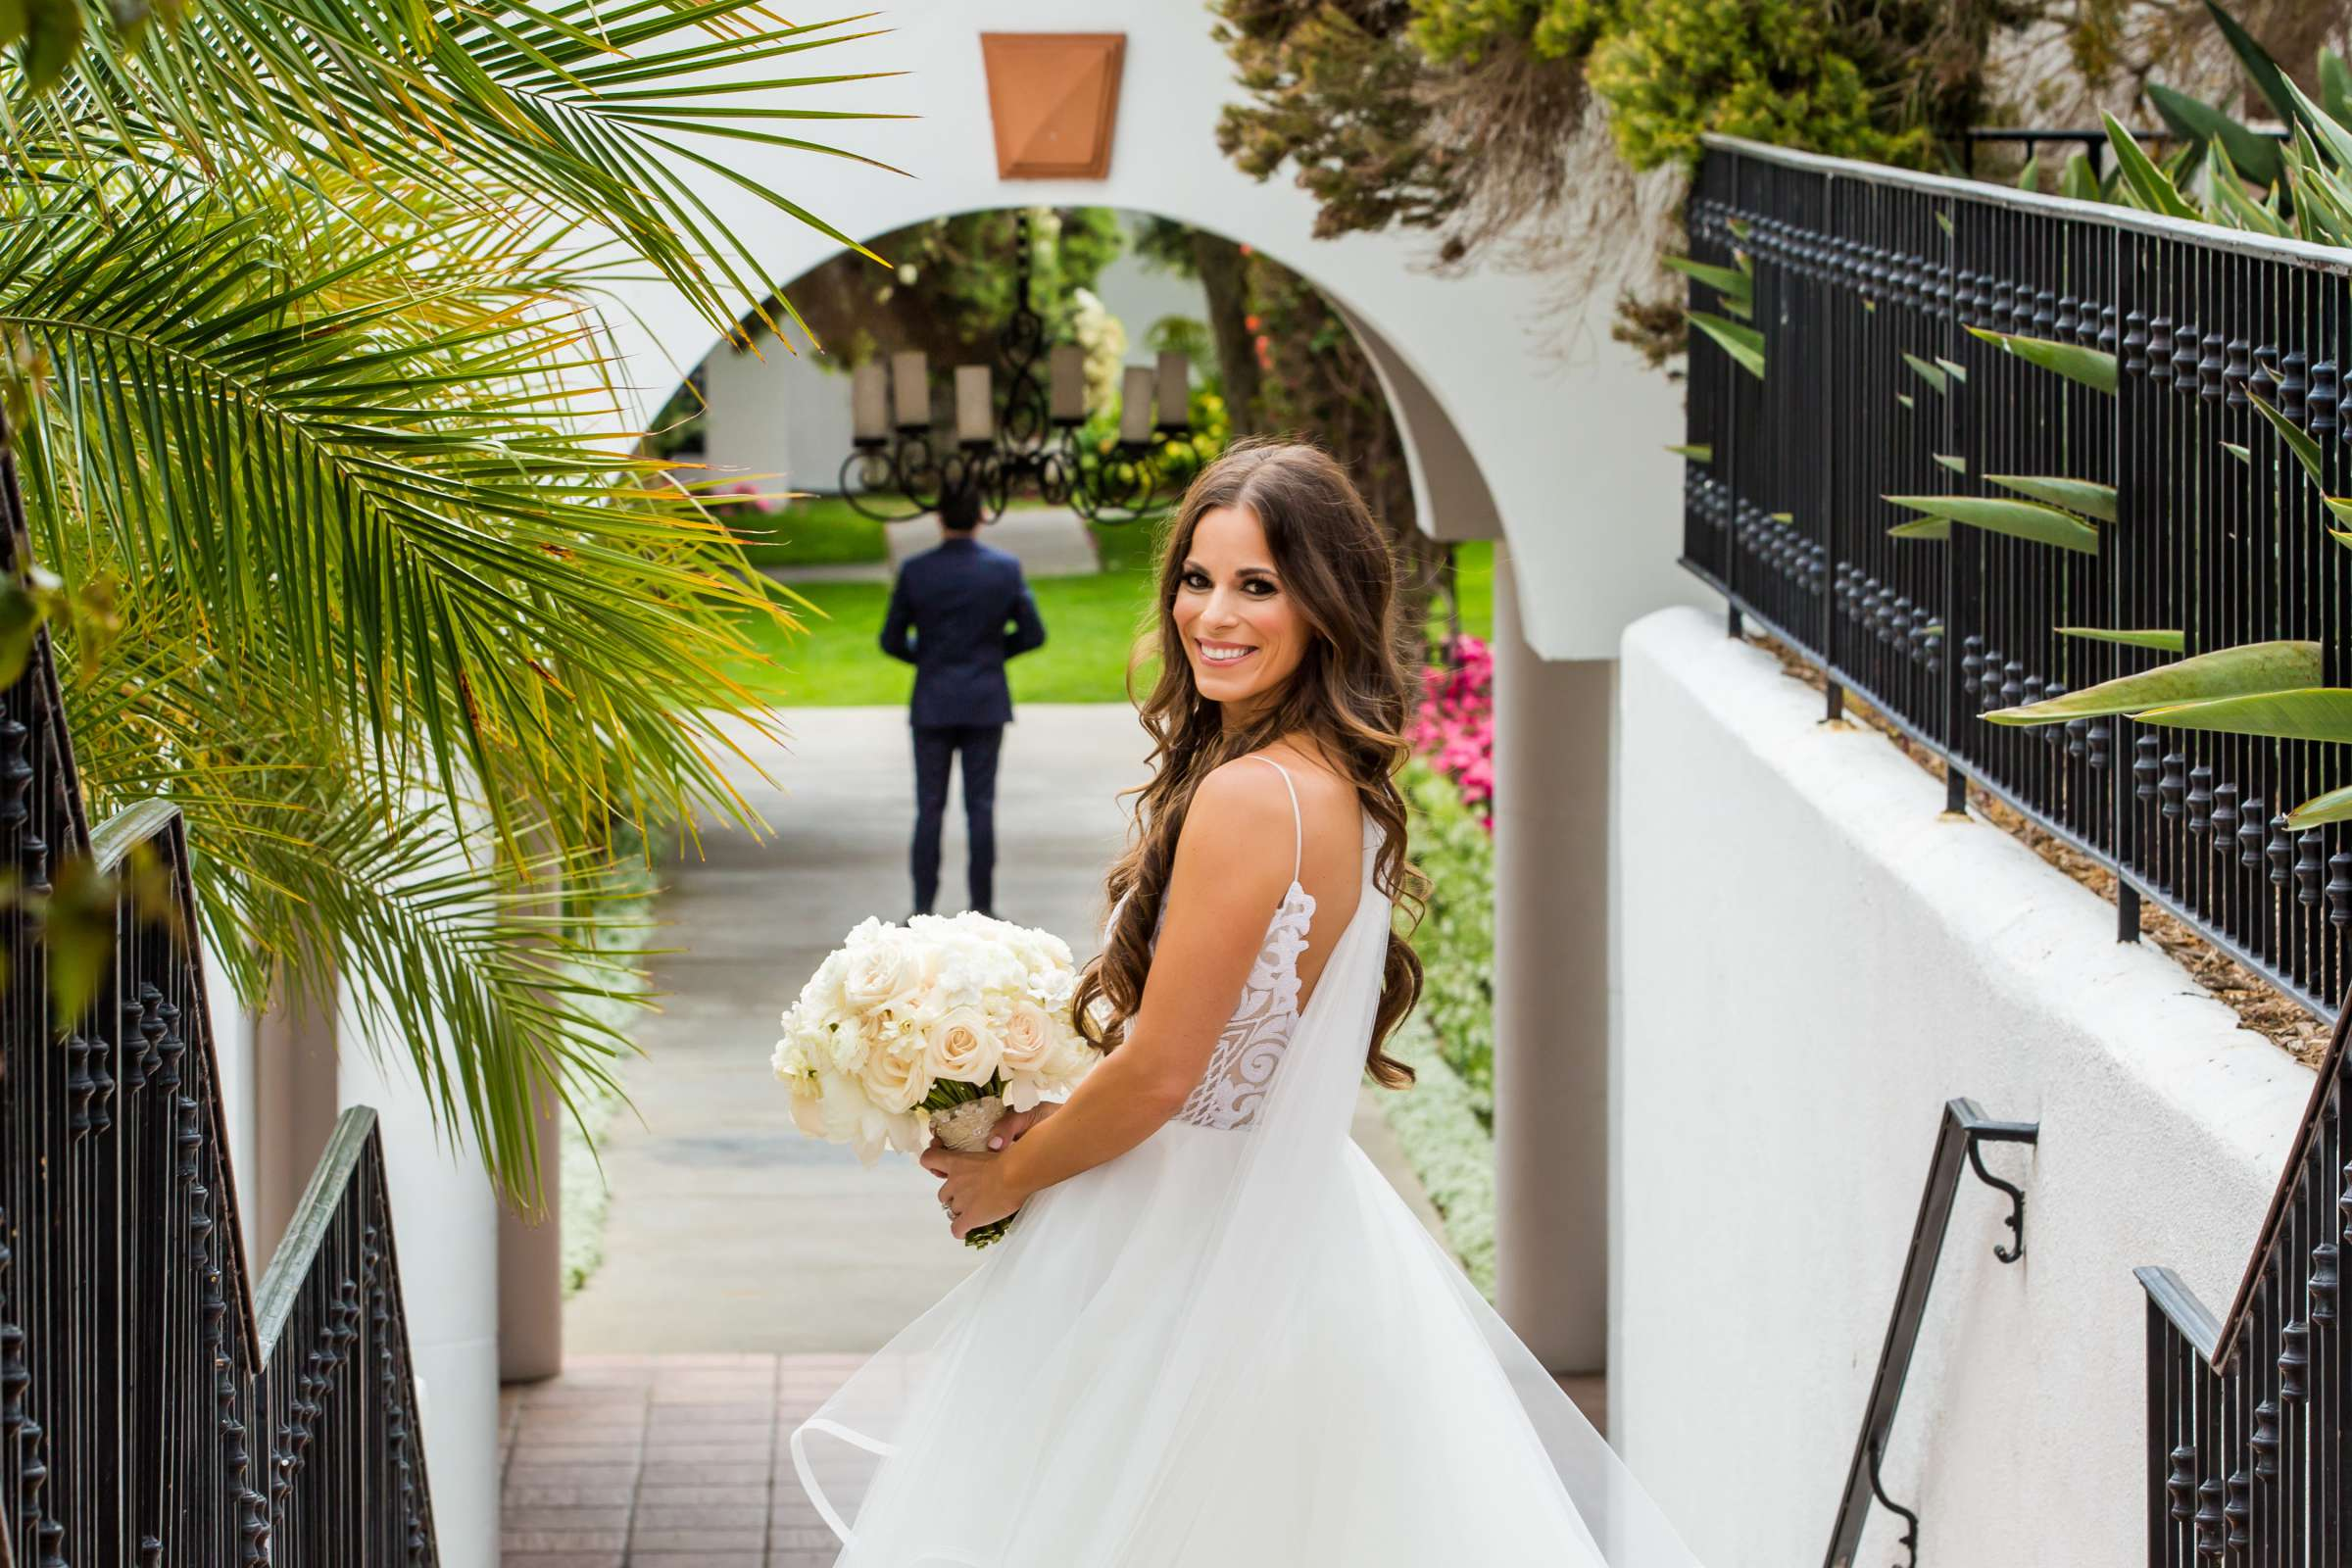 Omni La Costa Resort & Spa Wedding coordinated by Fabulous Two Design, Kristyn and Mani Wedding Photo #70 by True Photography